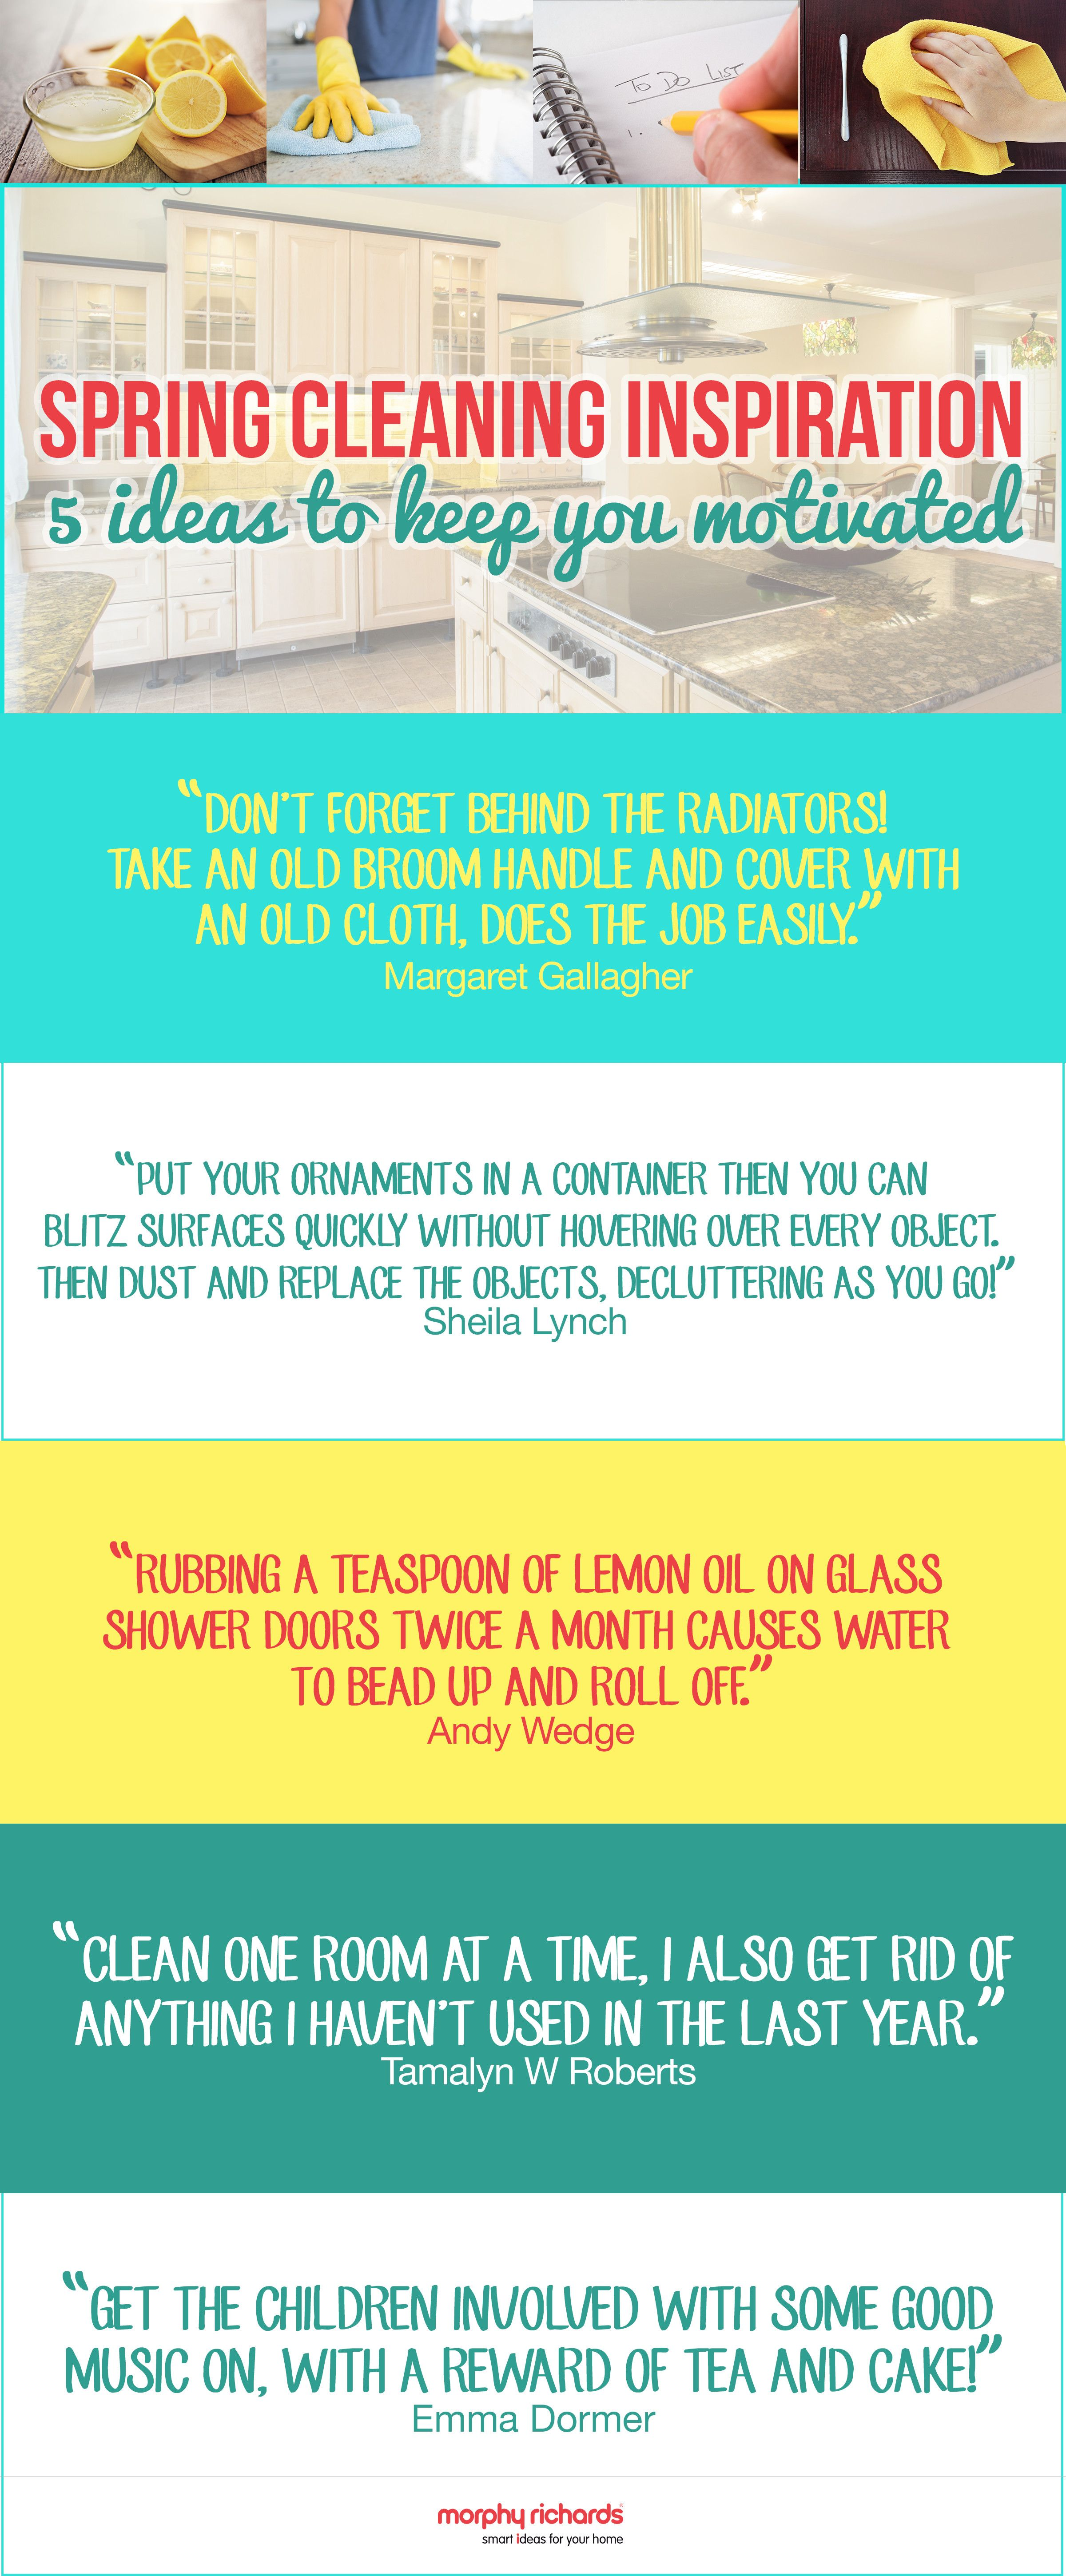 Spring Cleaning Quotes 5 Top Tip Quotes From Morphy Richards Fans For Spring Cleaning